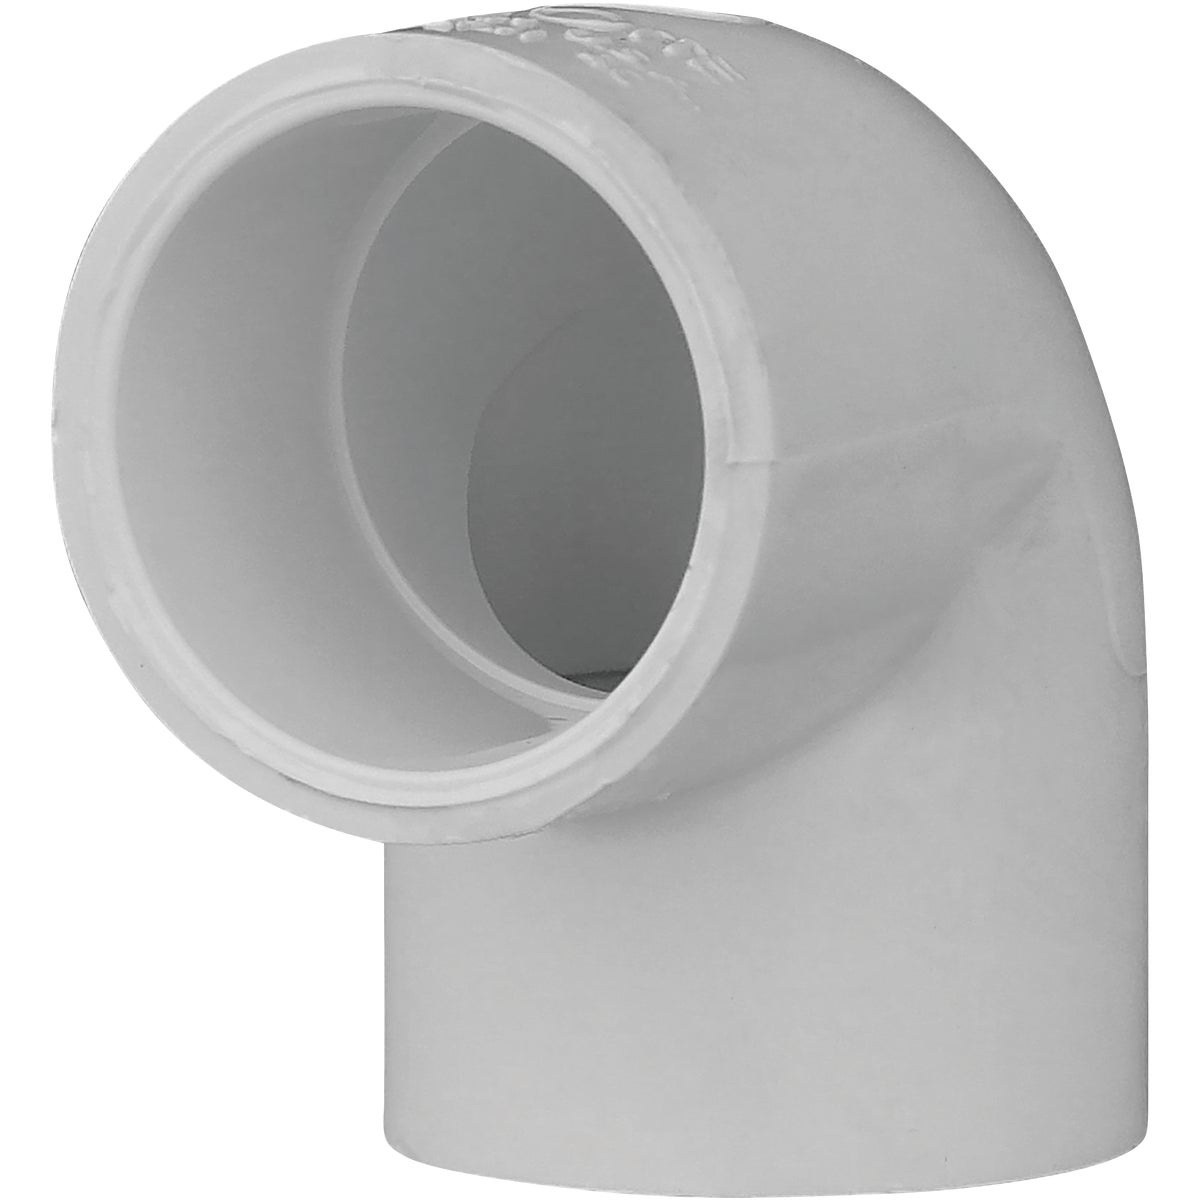 "10PK 3/4""SCH40 90D ELBOW - 30707CP by Genova Inc"